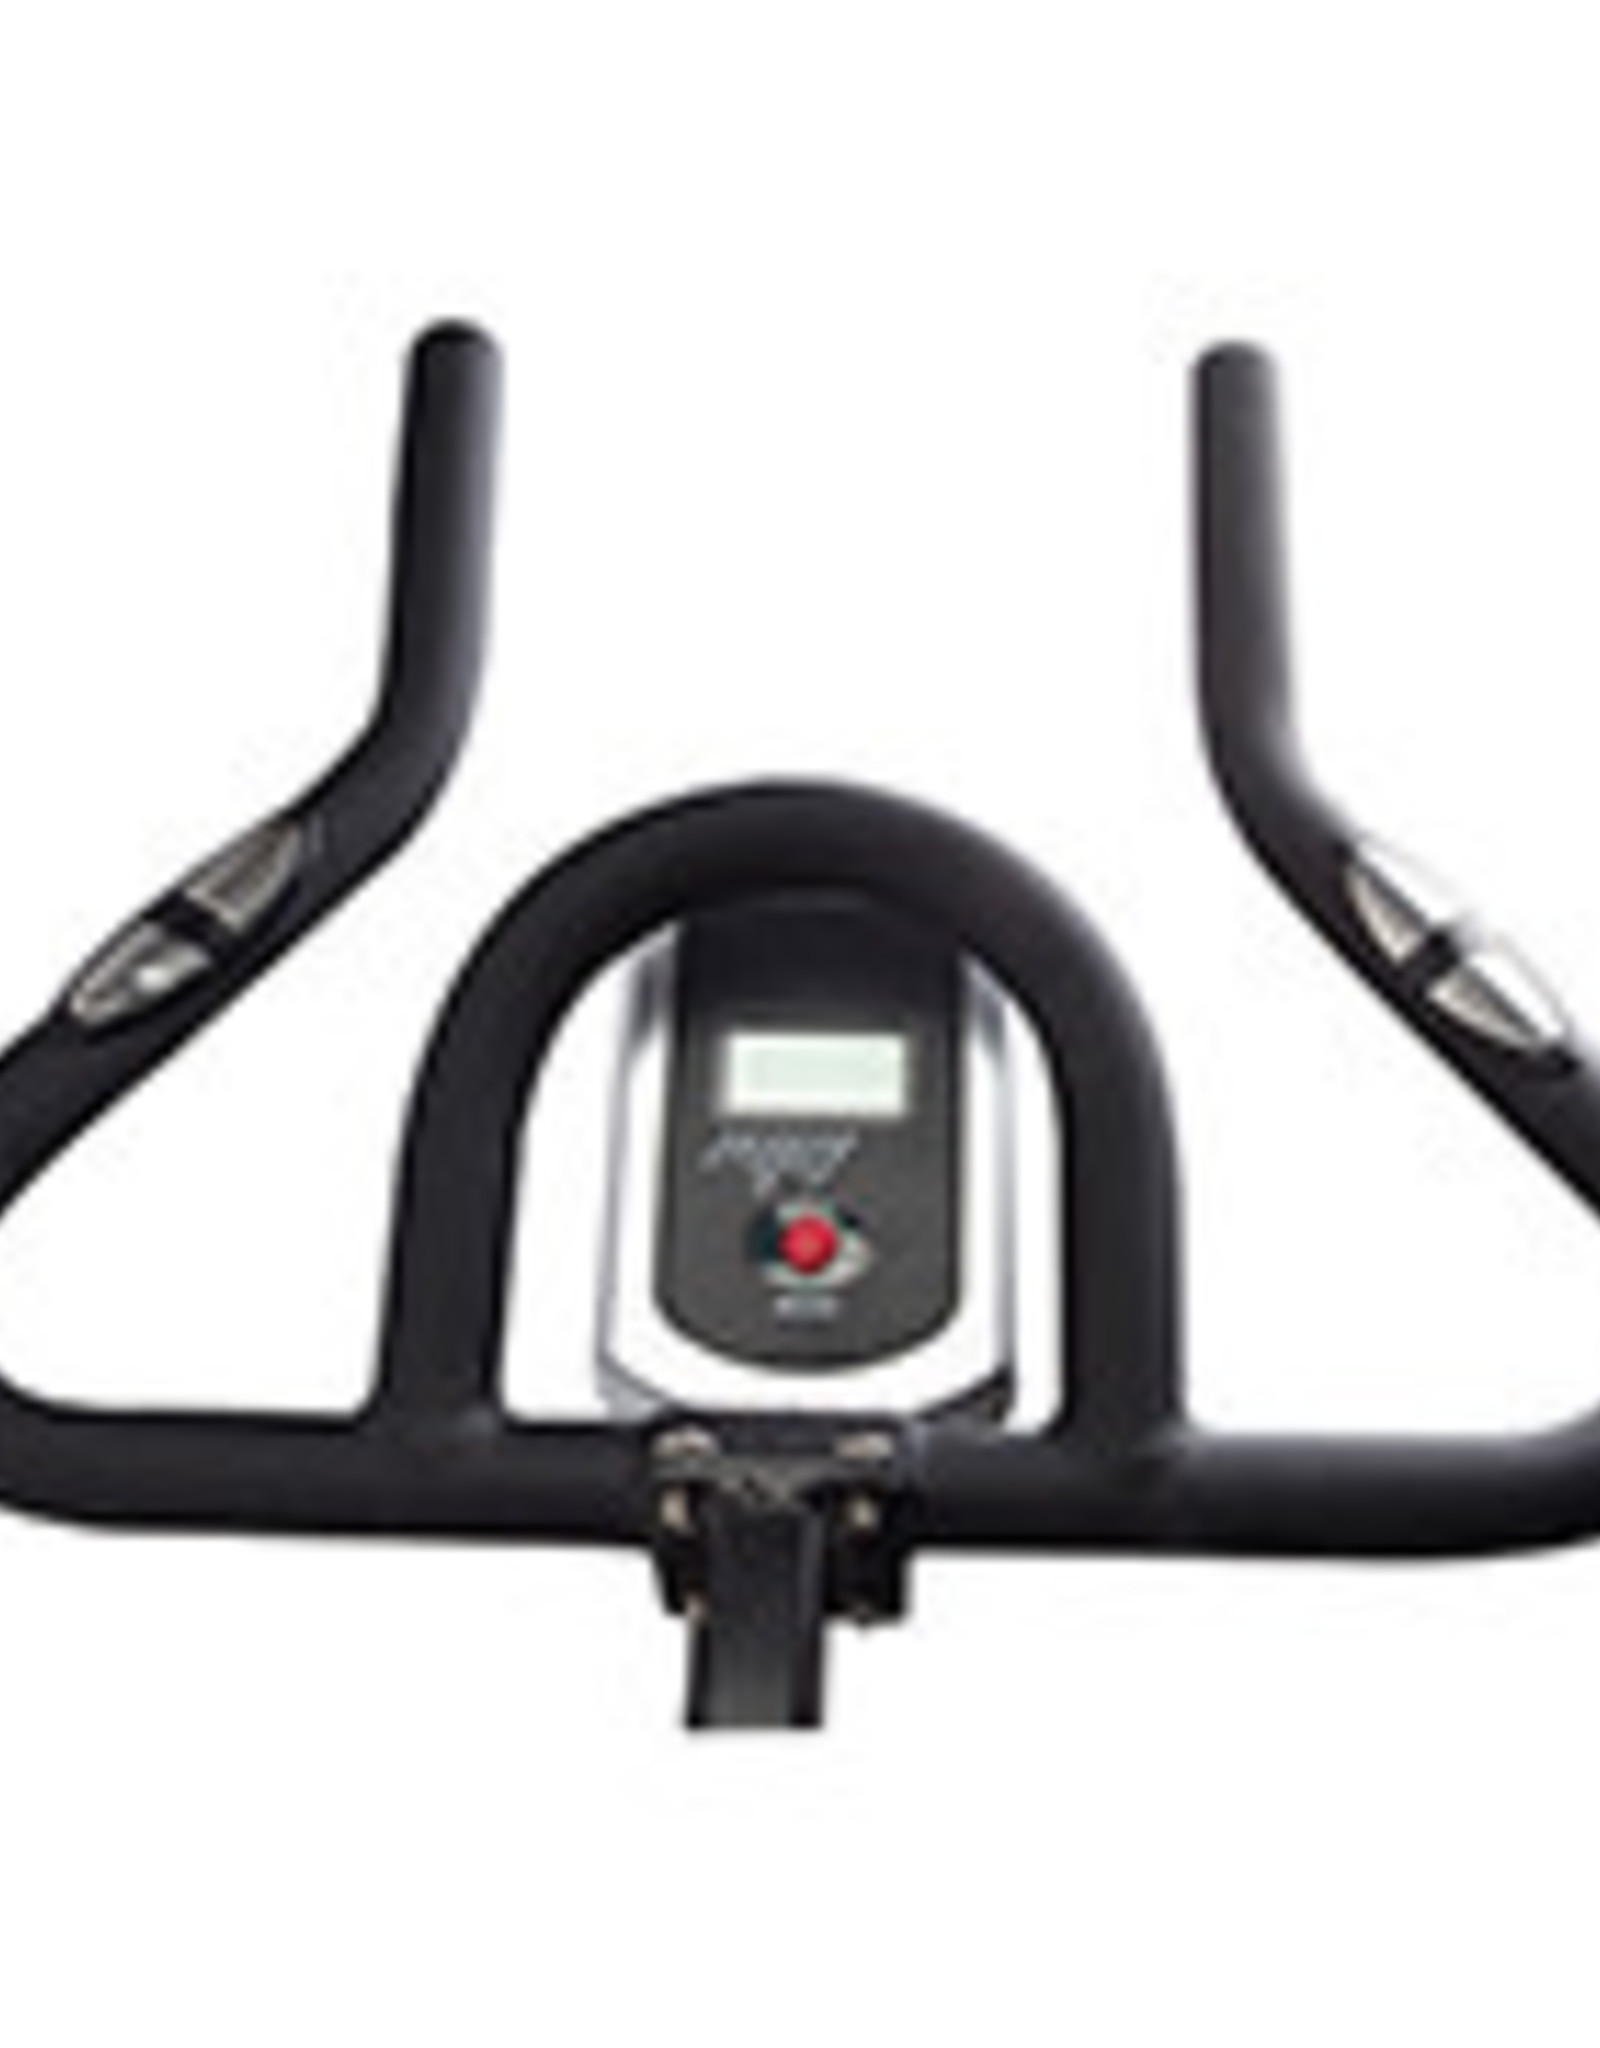 SUNLITE EXERCISER SUNLT F5 V3 TRAINER BIKE